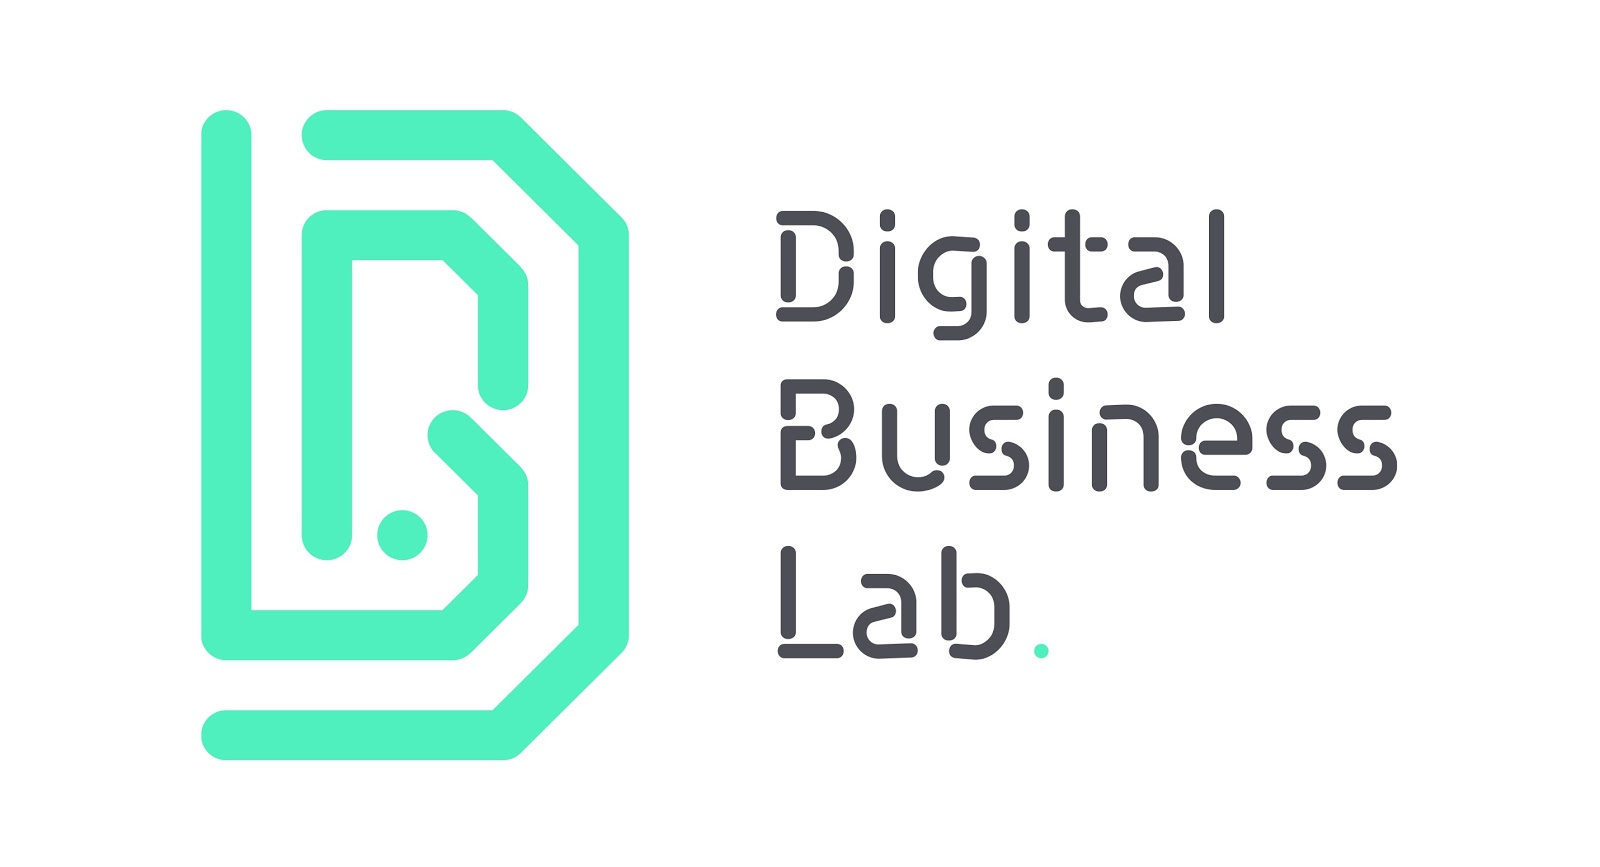 Digital Business Lab logo digital marketing agency singapore